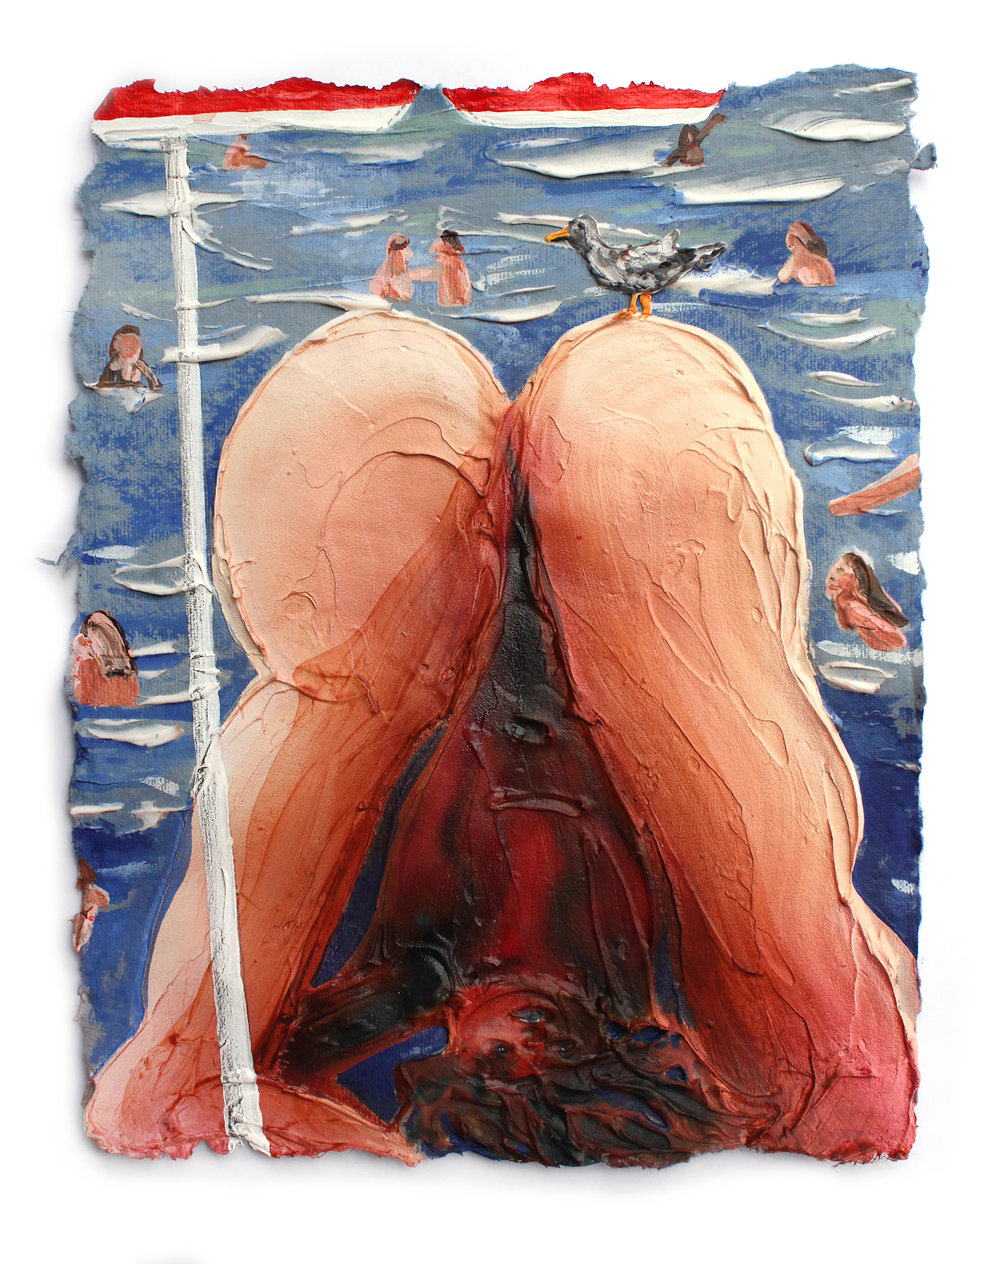 Kate Klingbeil - Beach BodyAcrylic on acid free Japanese rag paper9